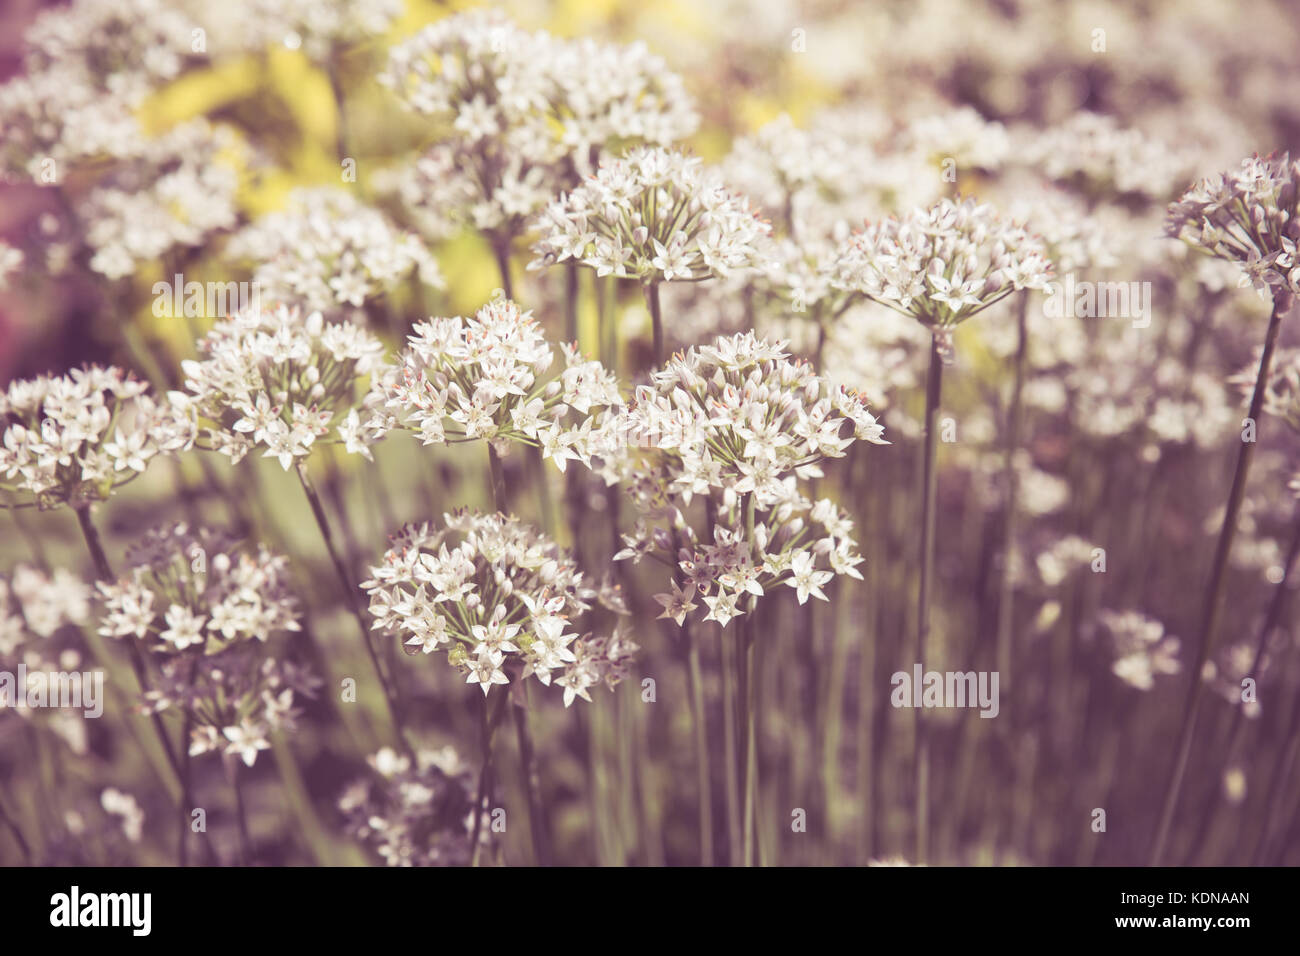 Vintage Toned Small White Flowers Growing In Garden Stock Photo